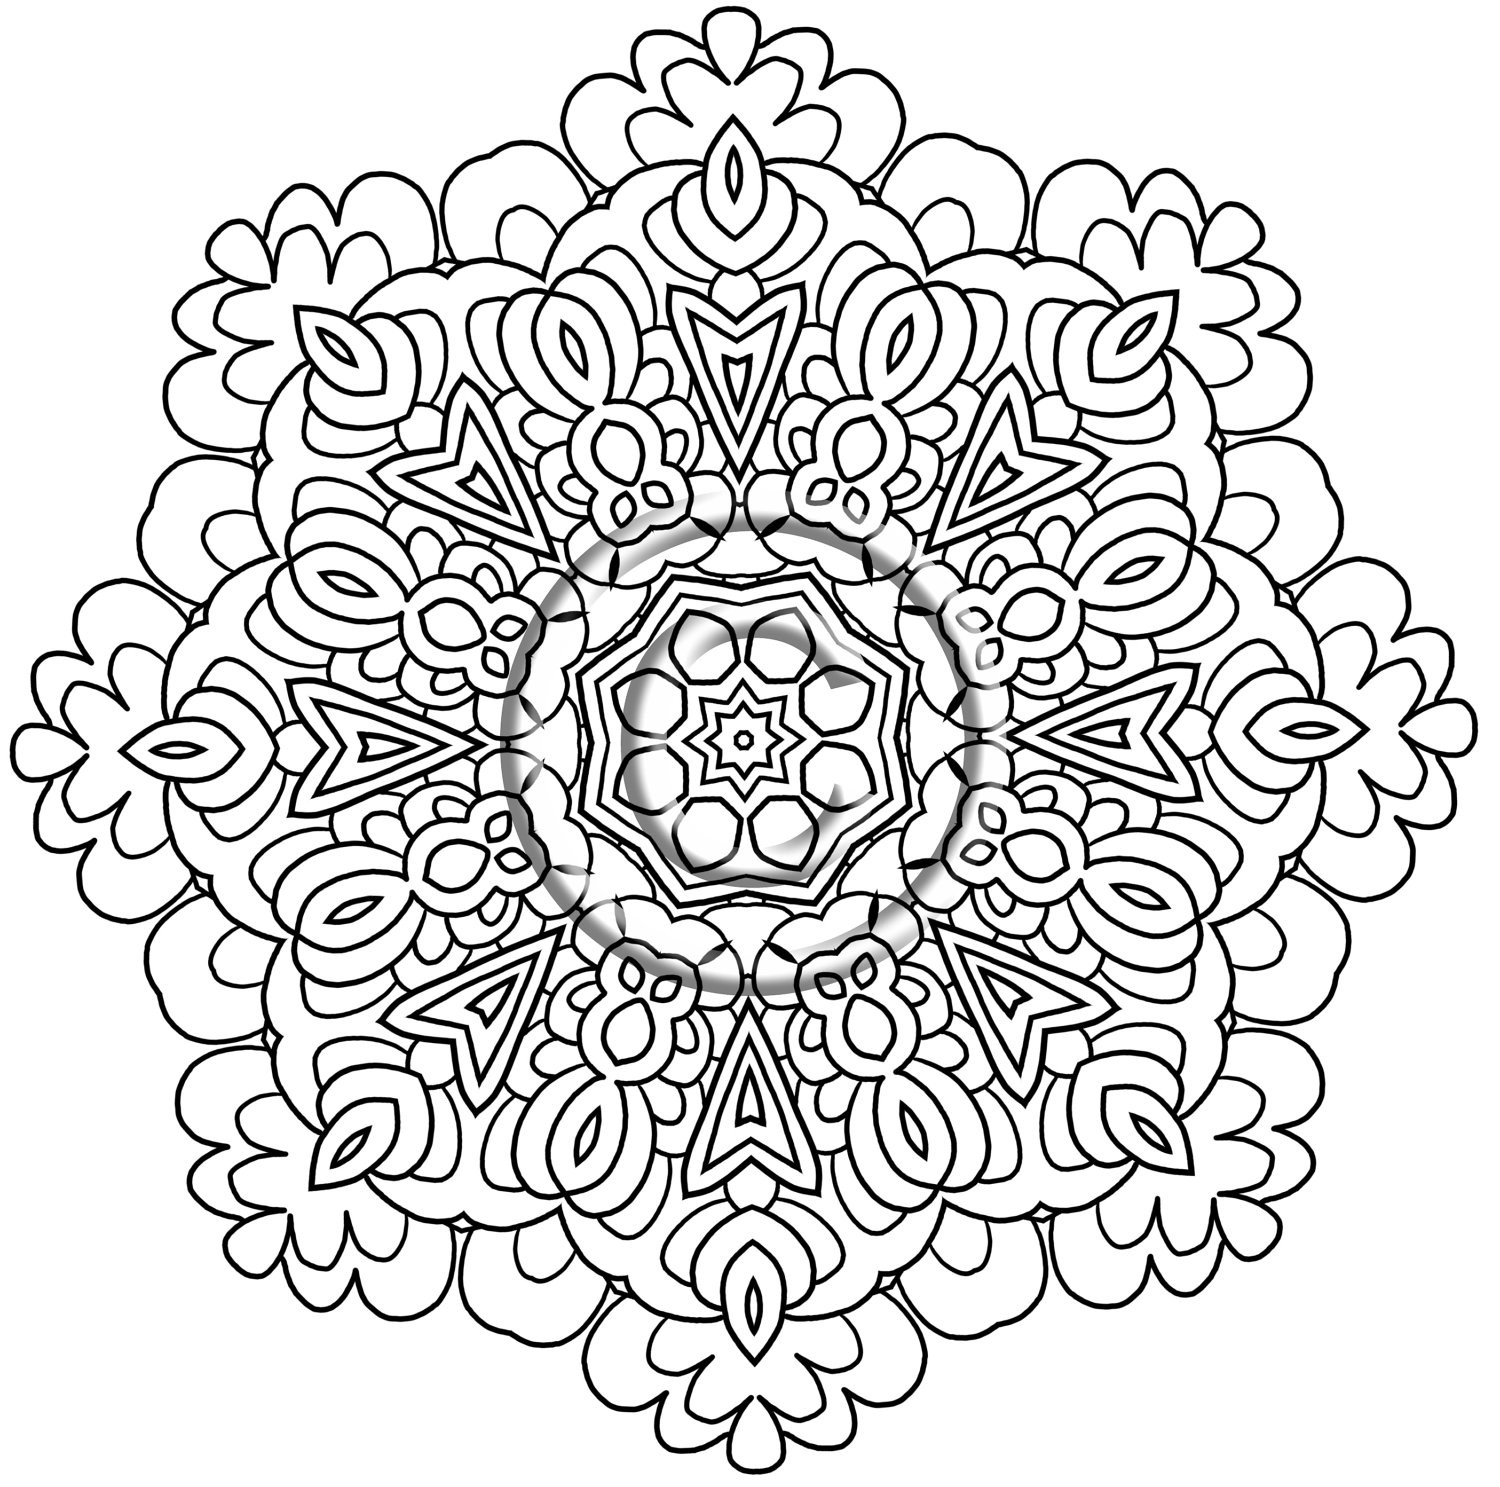 Mandala Art Coloring Pages  Flower Mandala Coloring Pages coloringsuite